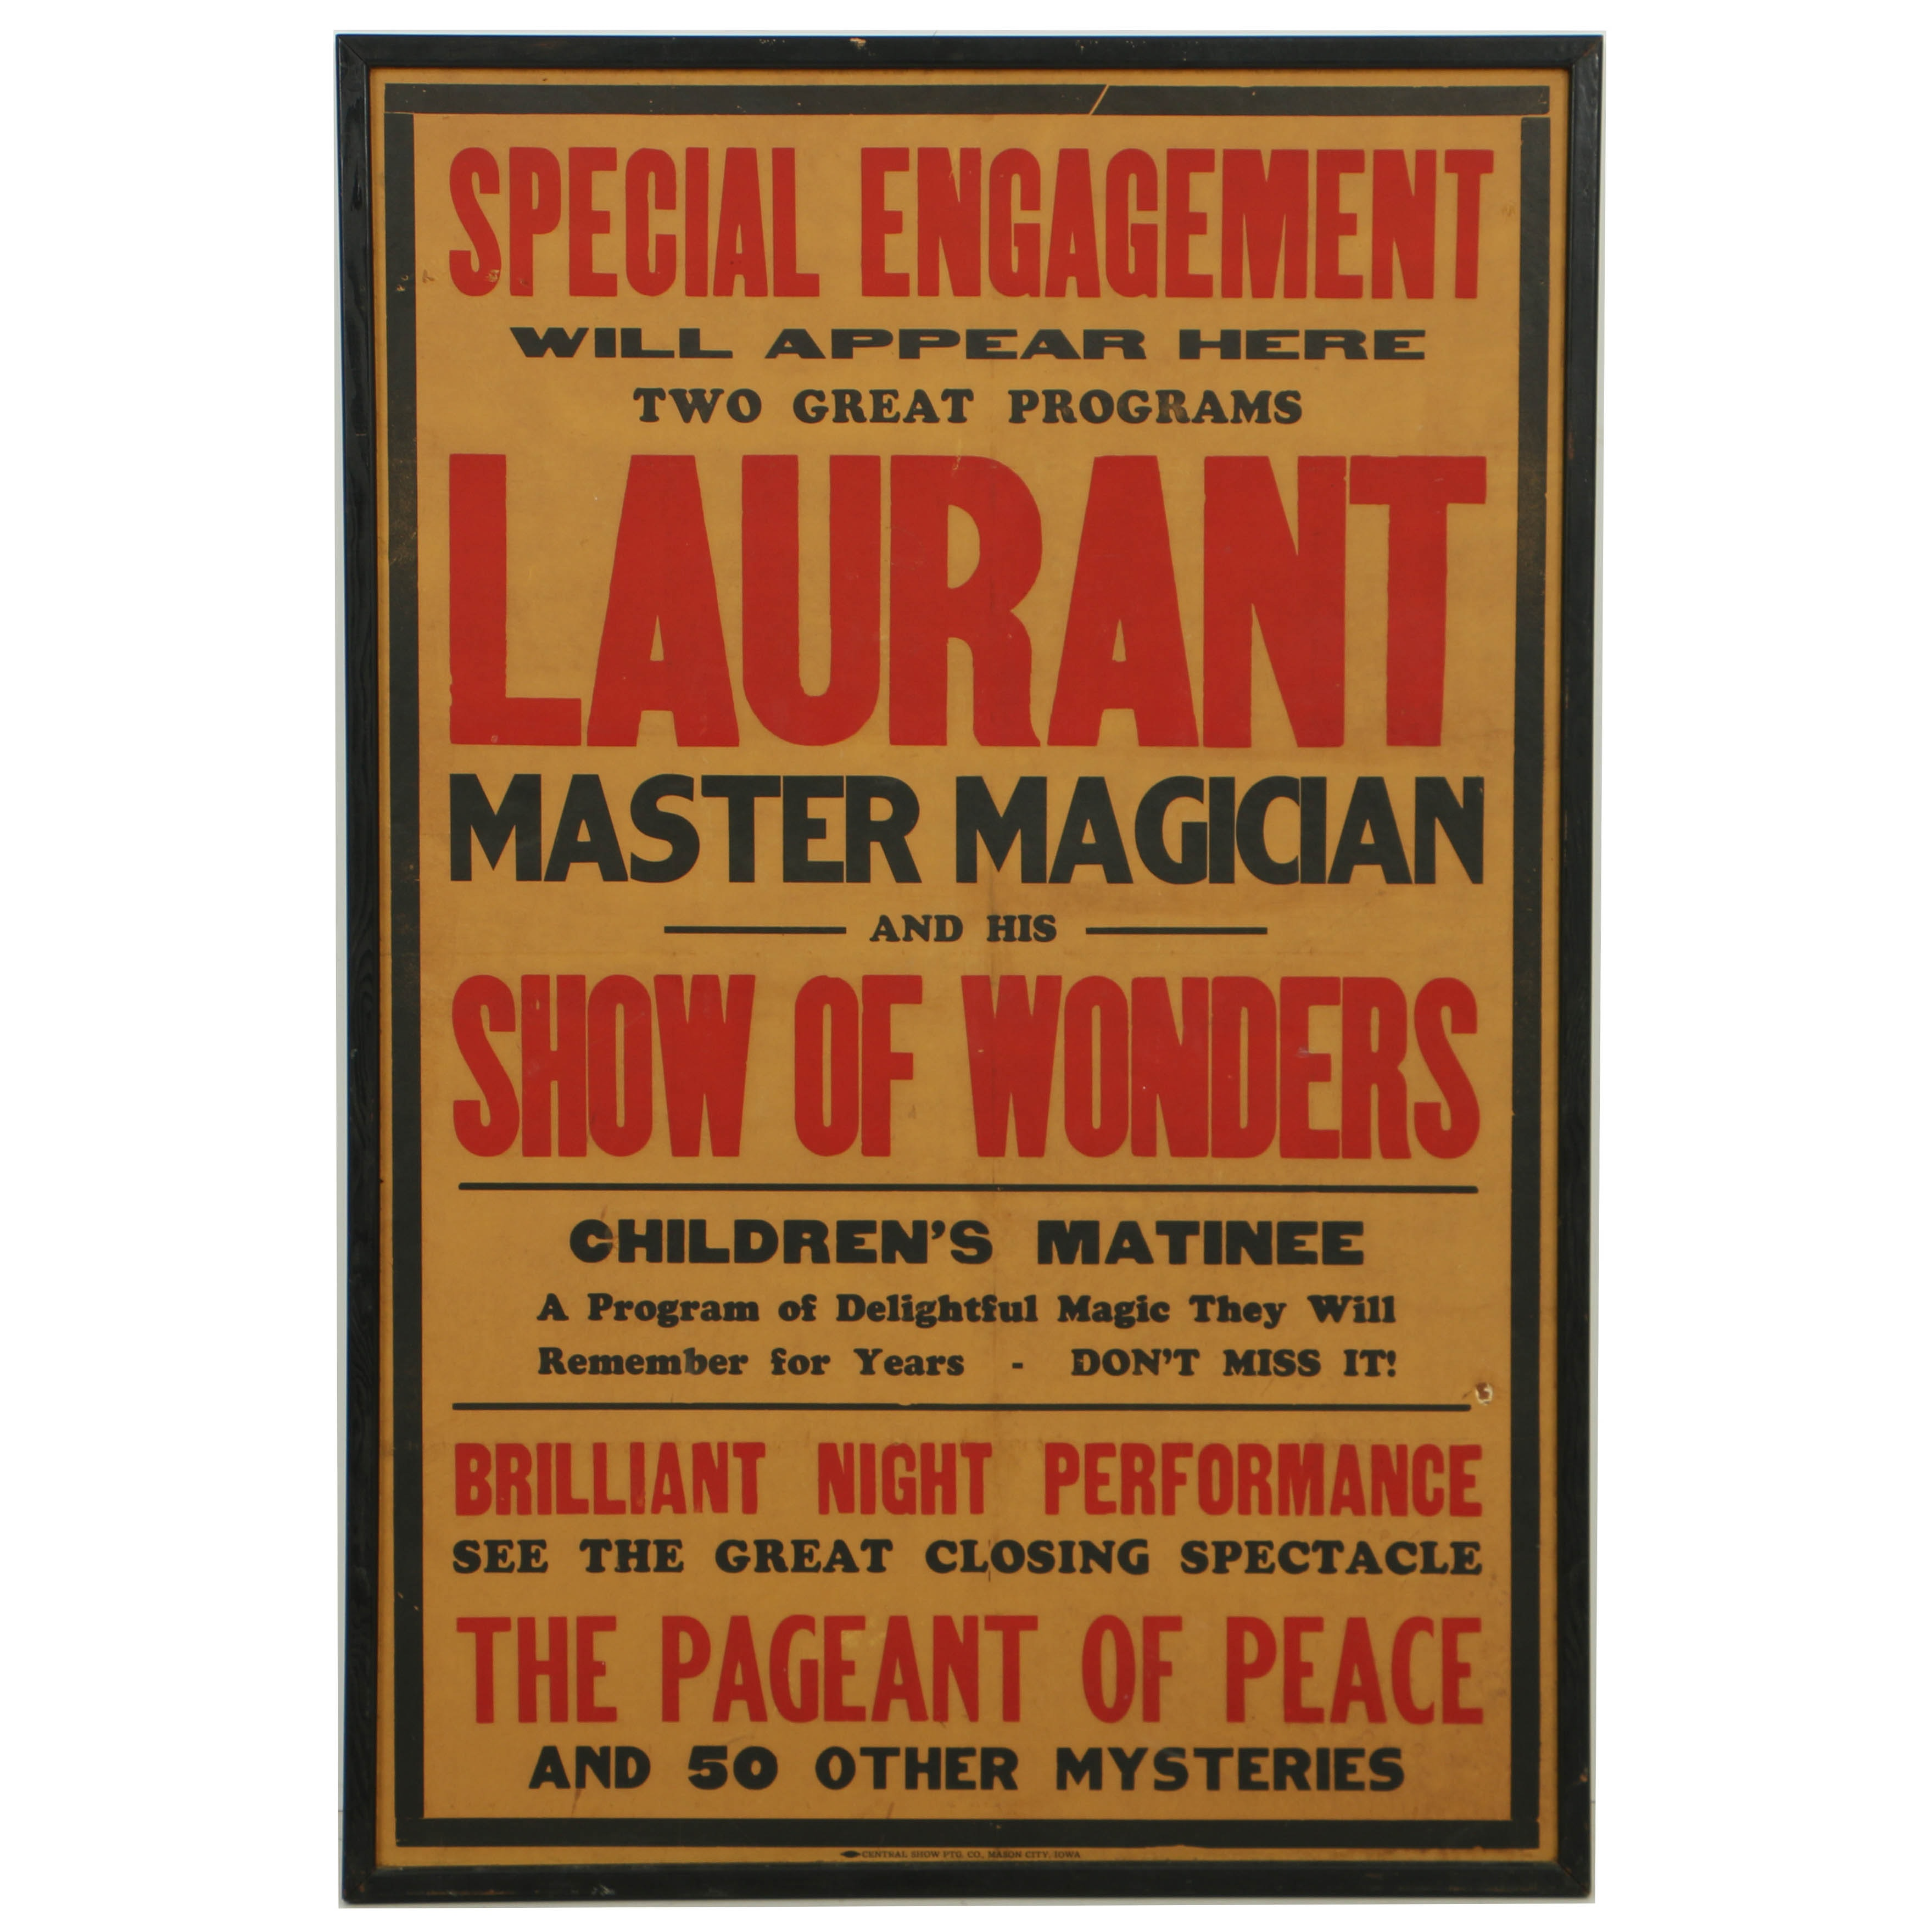 Laurant Master Magician and His Show of Words Magic Poster